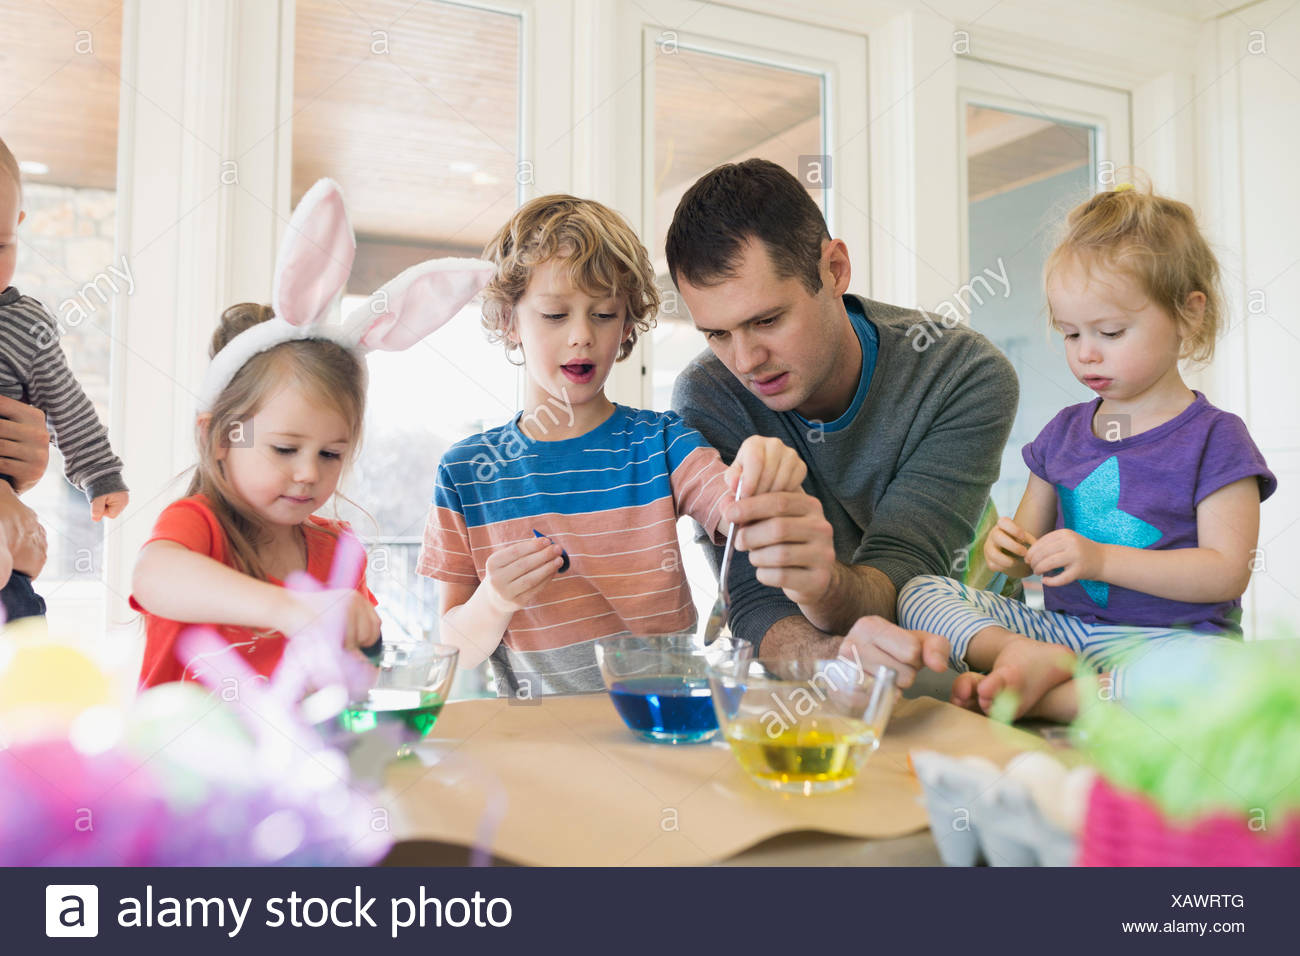 Family dipping Easter eggs in food coloring - Stock Image